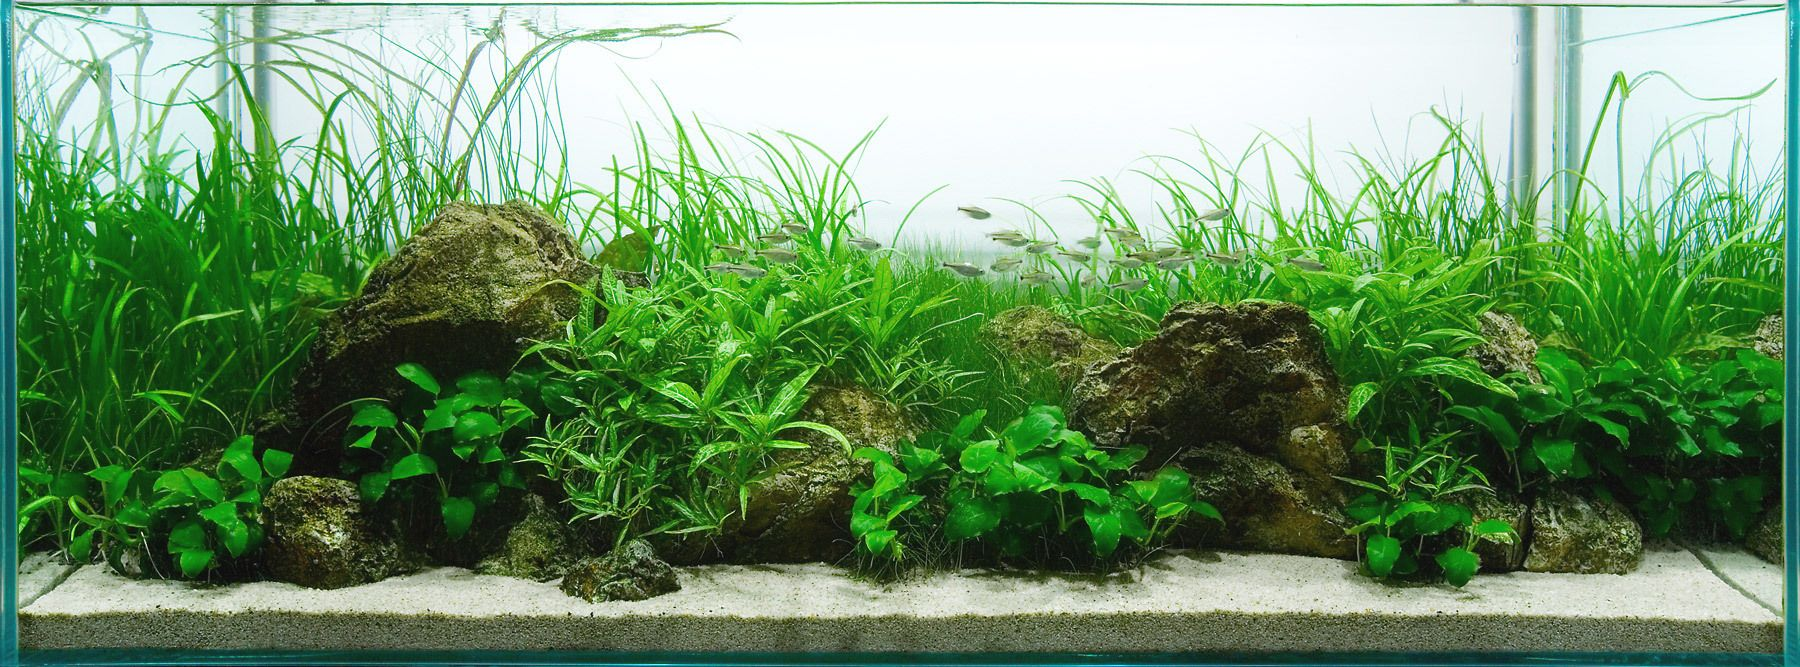 A Refreshing Feeling from a Green Aquascape